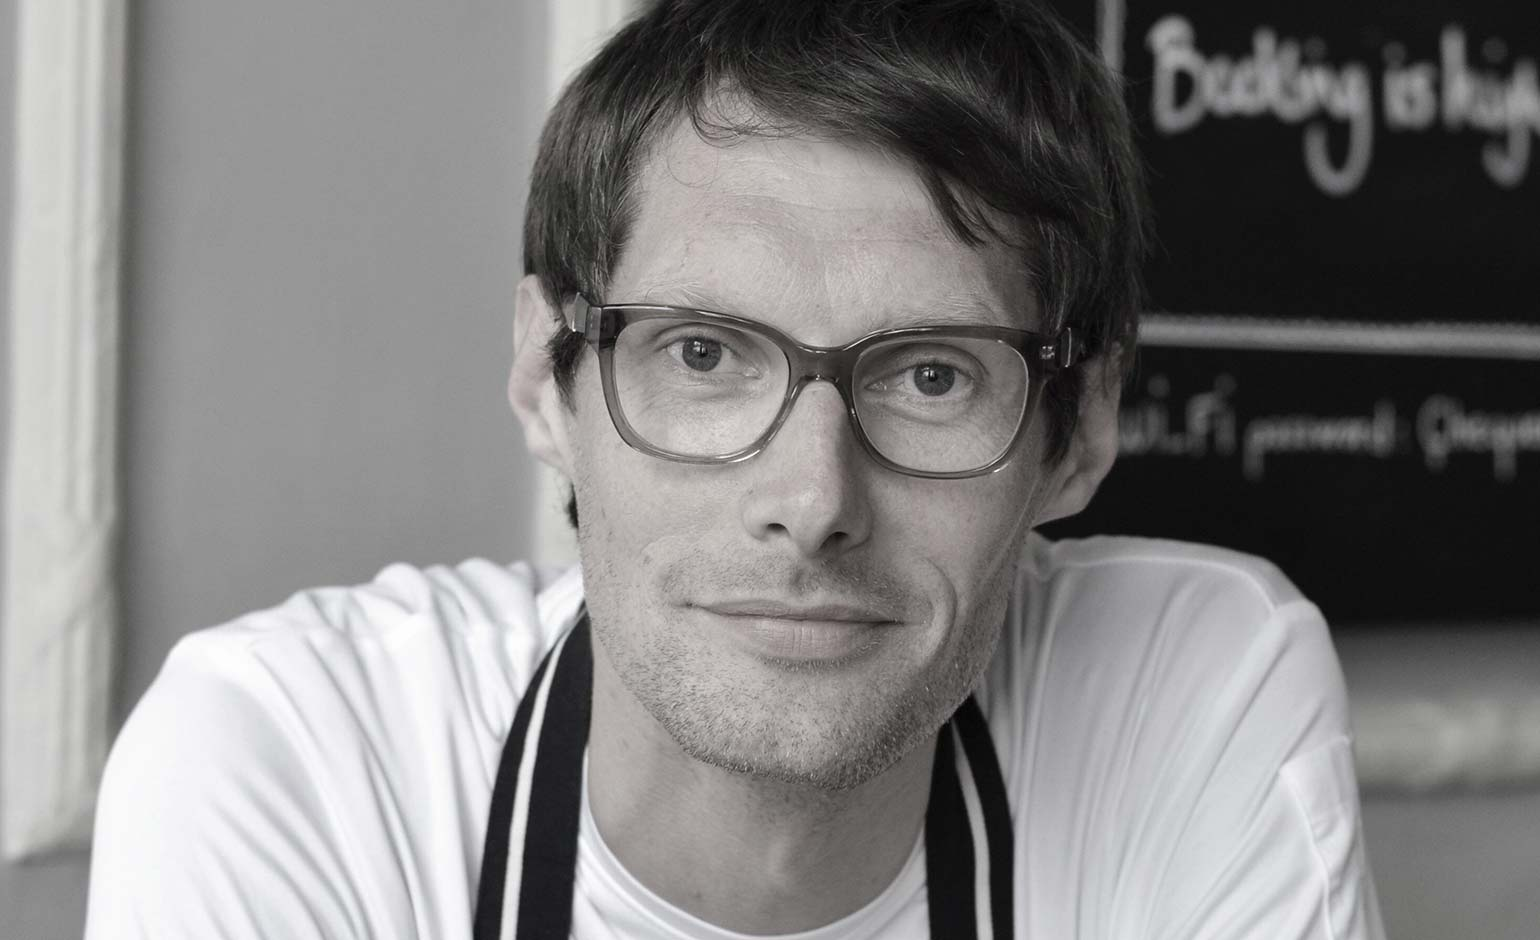 Popular gastropub The Chequers announces Ross Harper as new Head Chef | Bath Echo